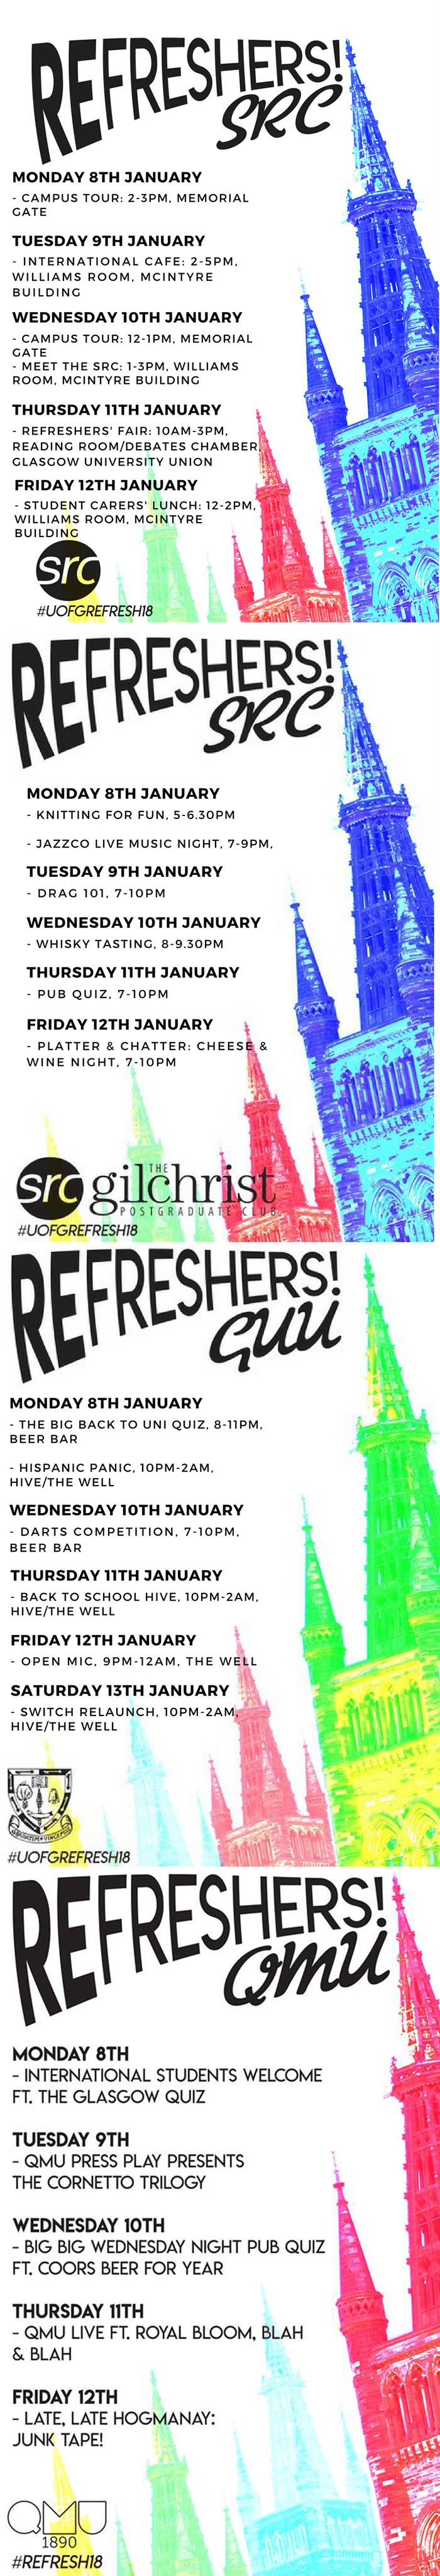 Refreshers Week Events